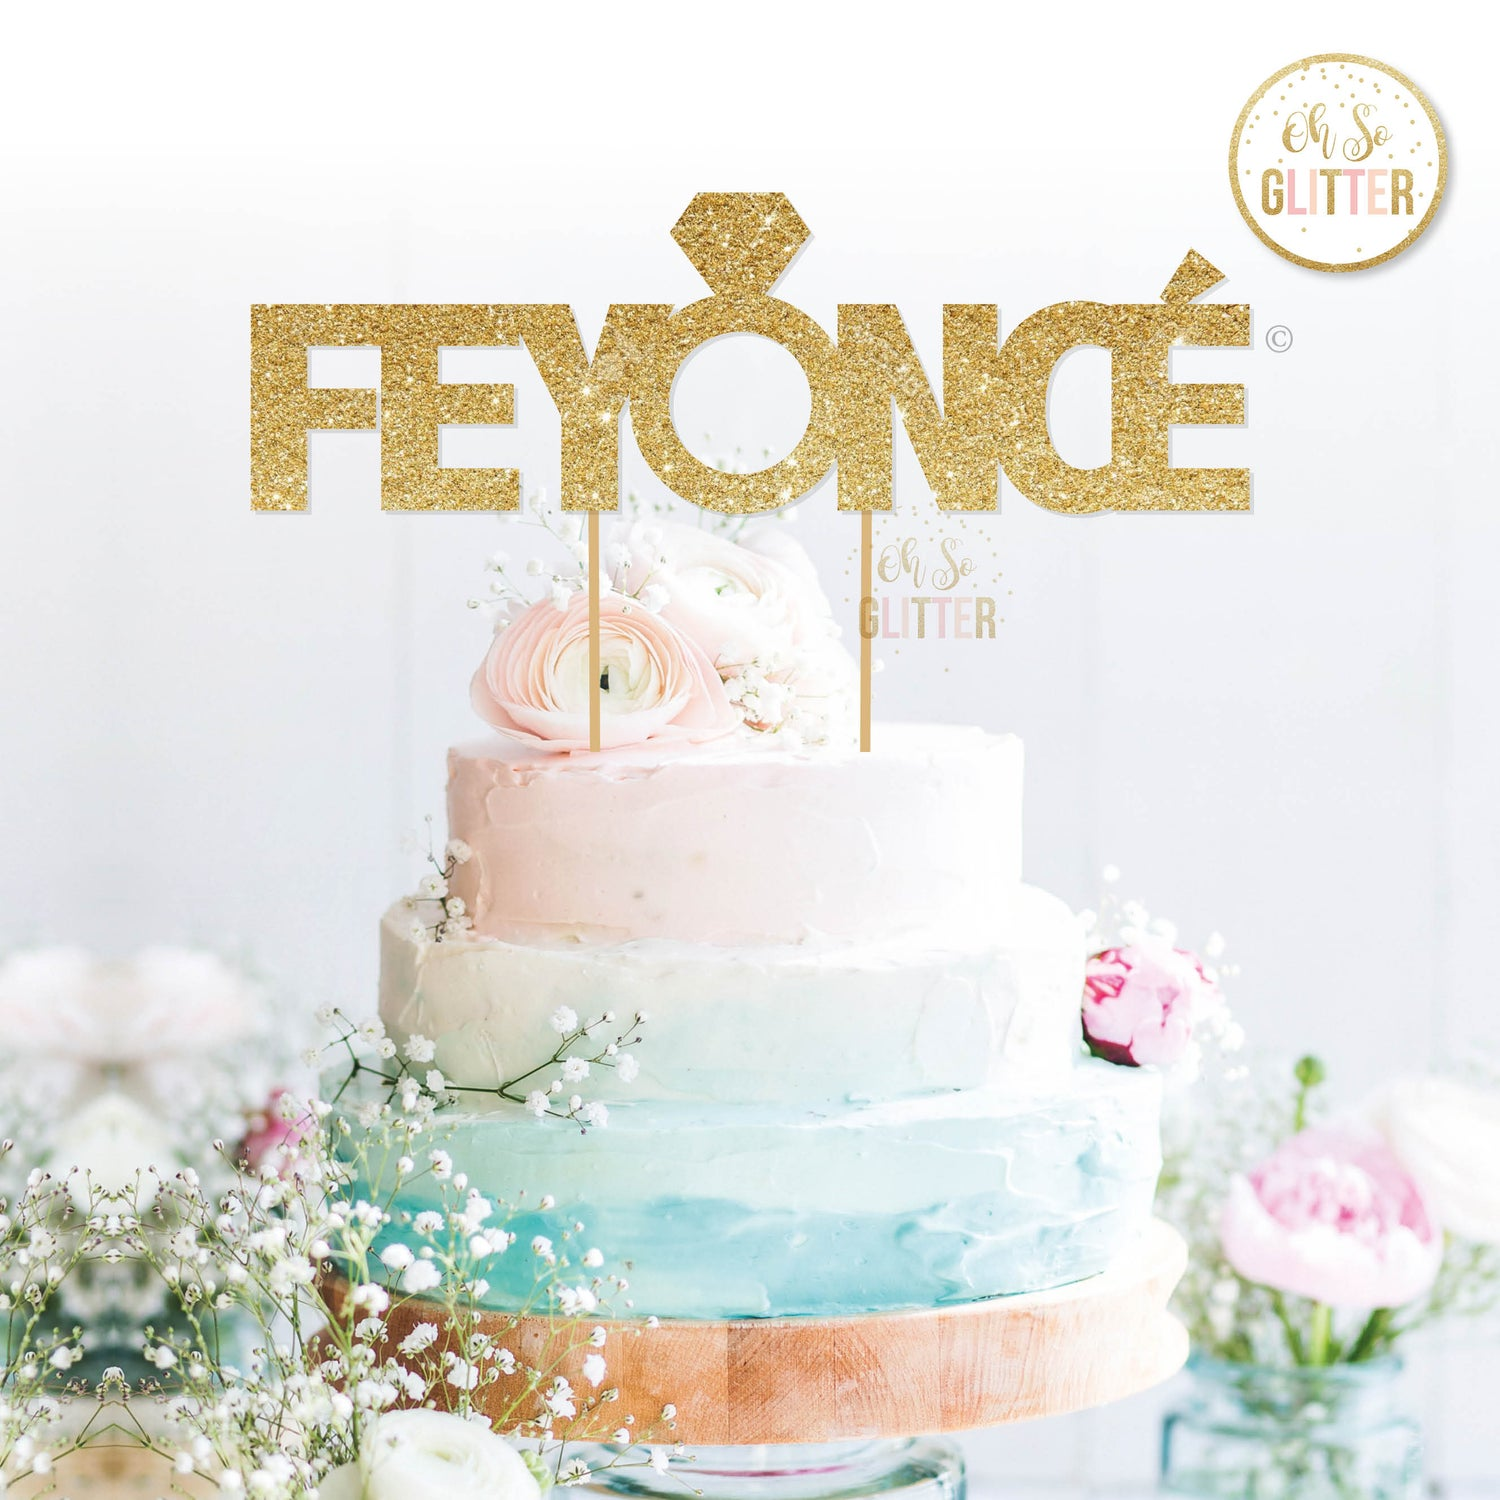 Image of Feyonce cake topper